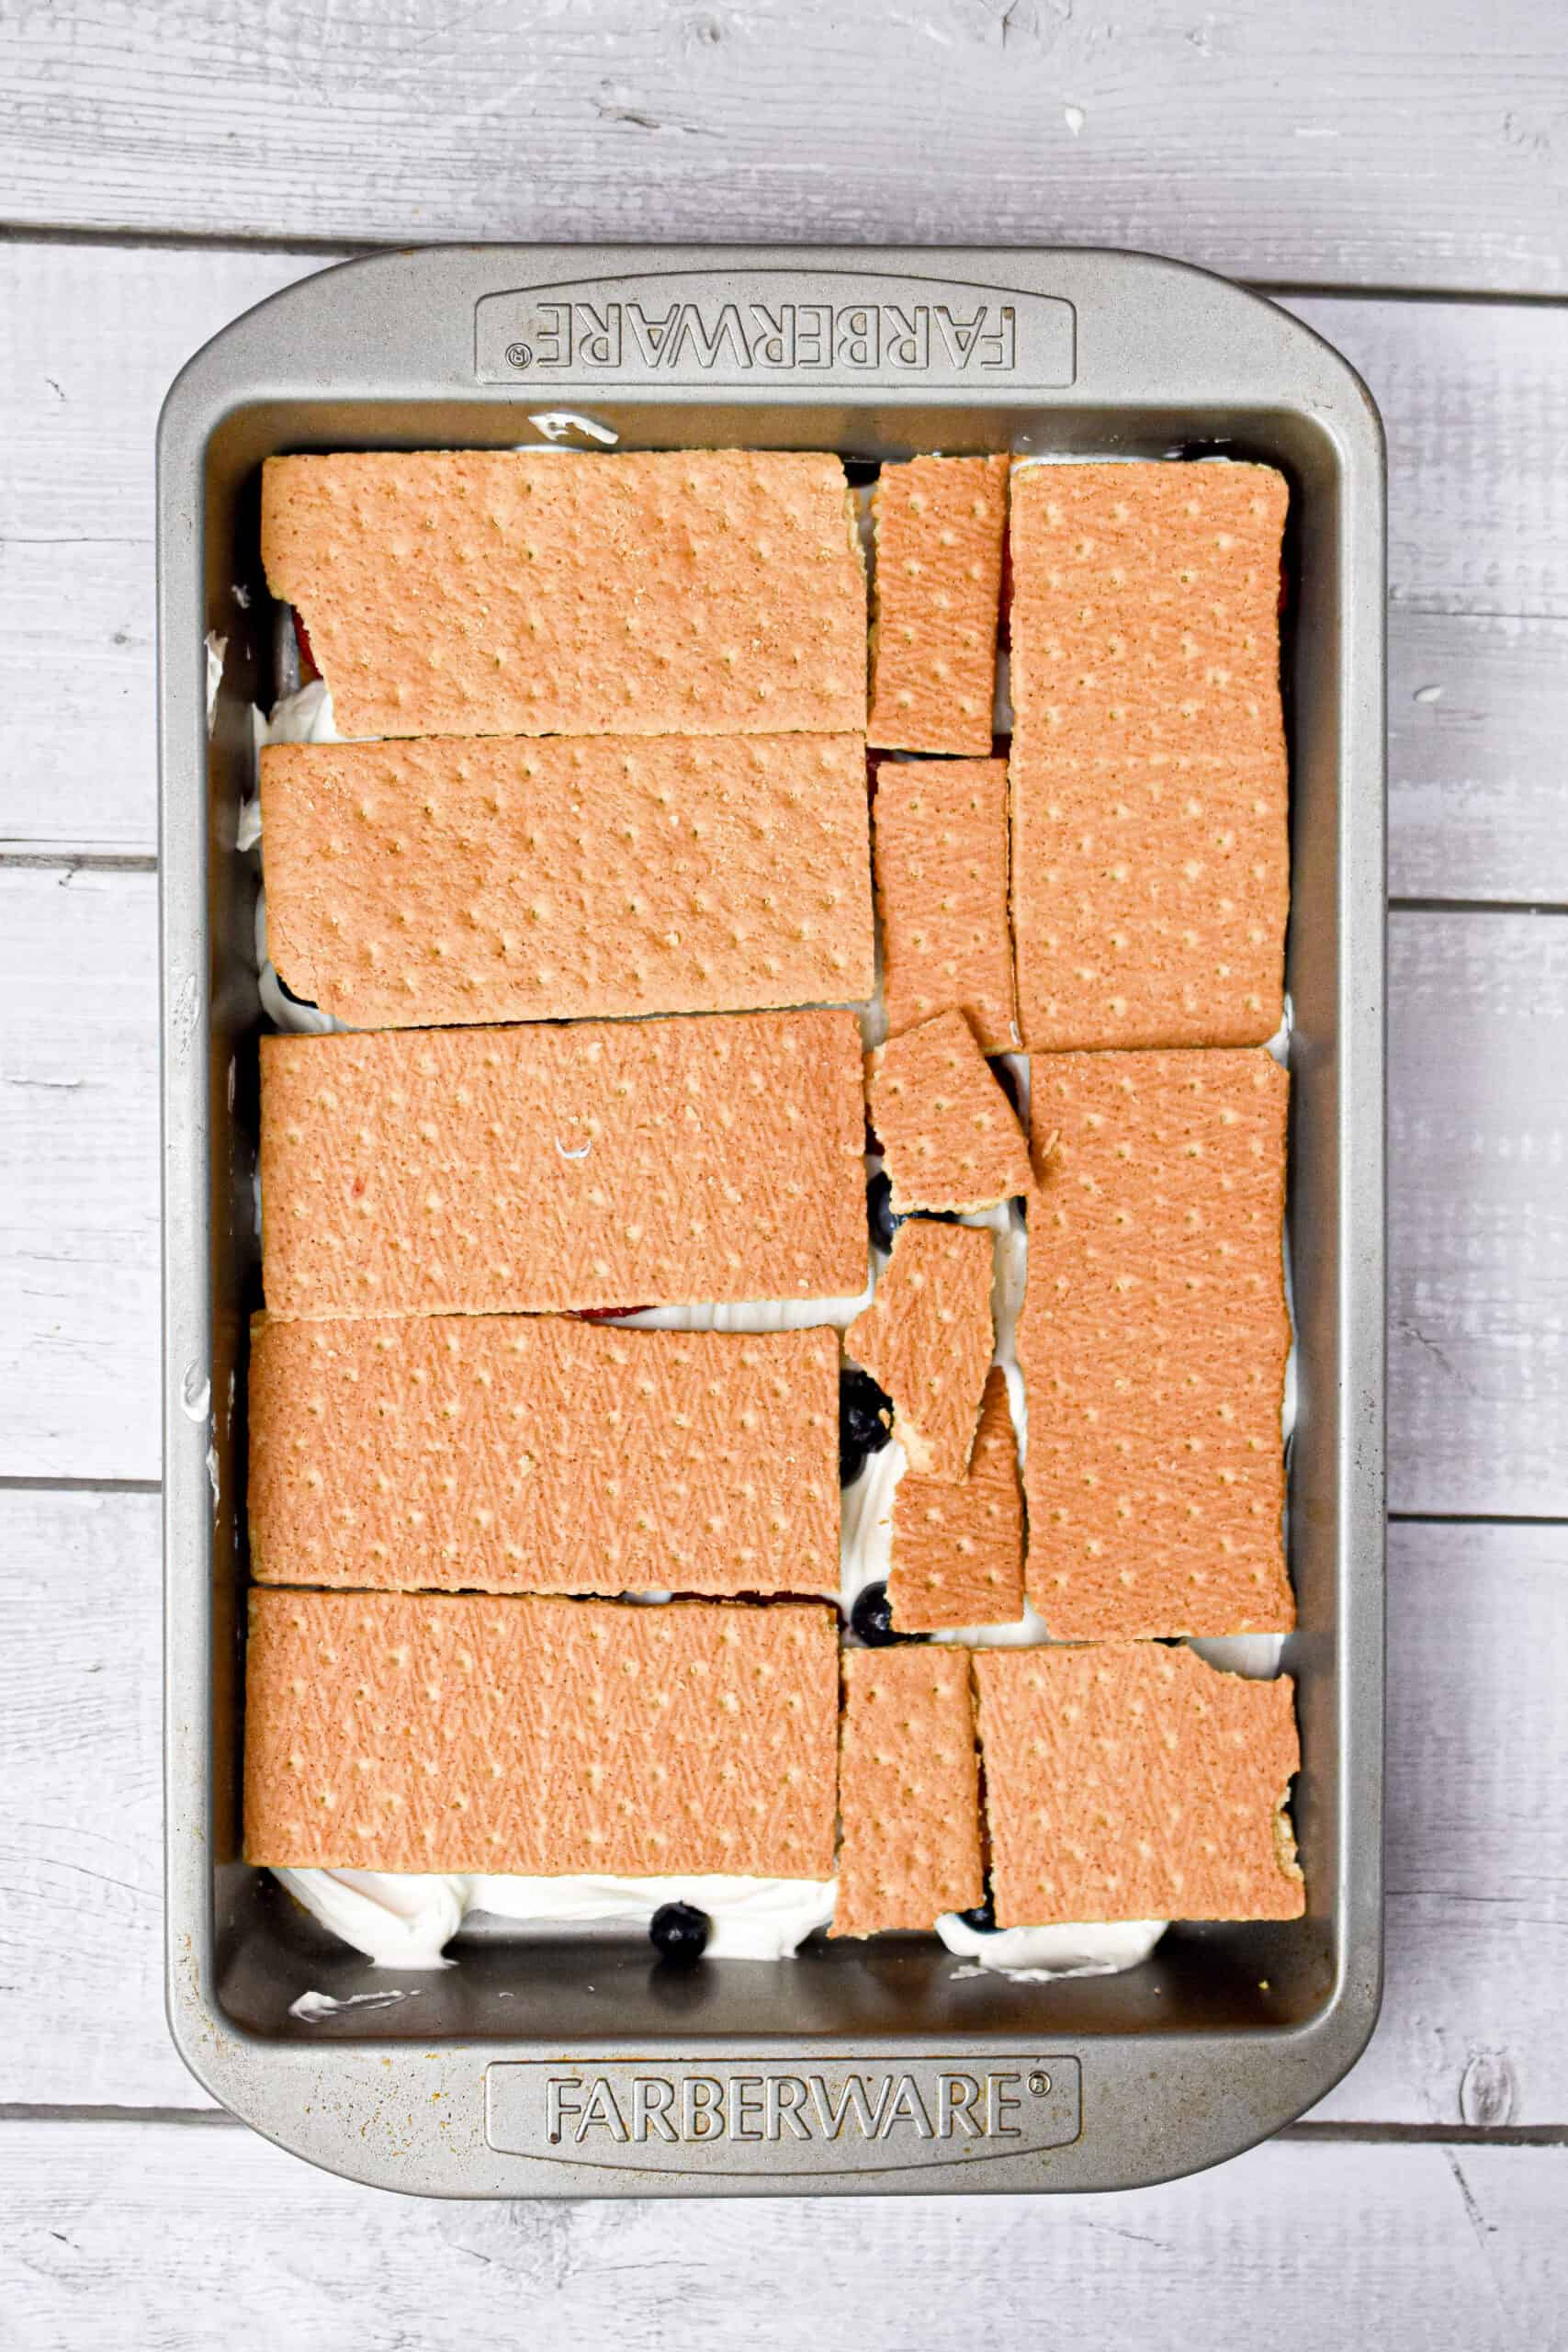 Another layer of graham crackers are added to the top of the berries